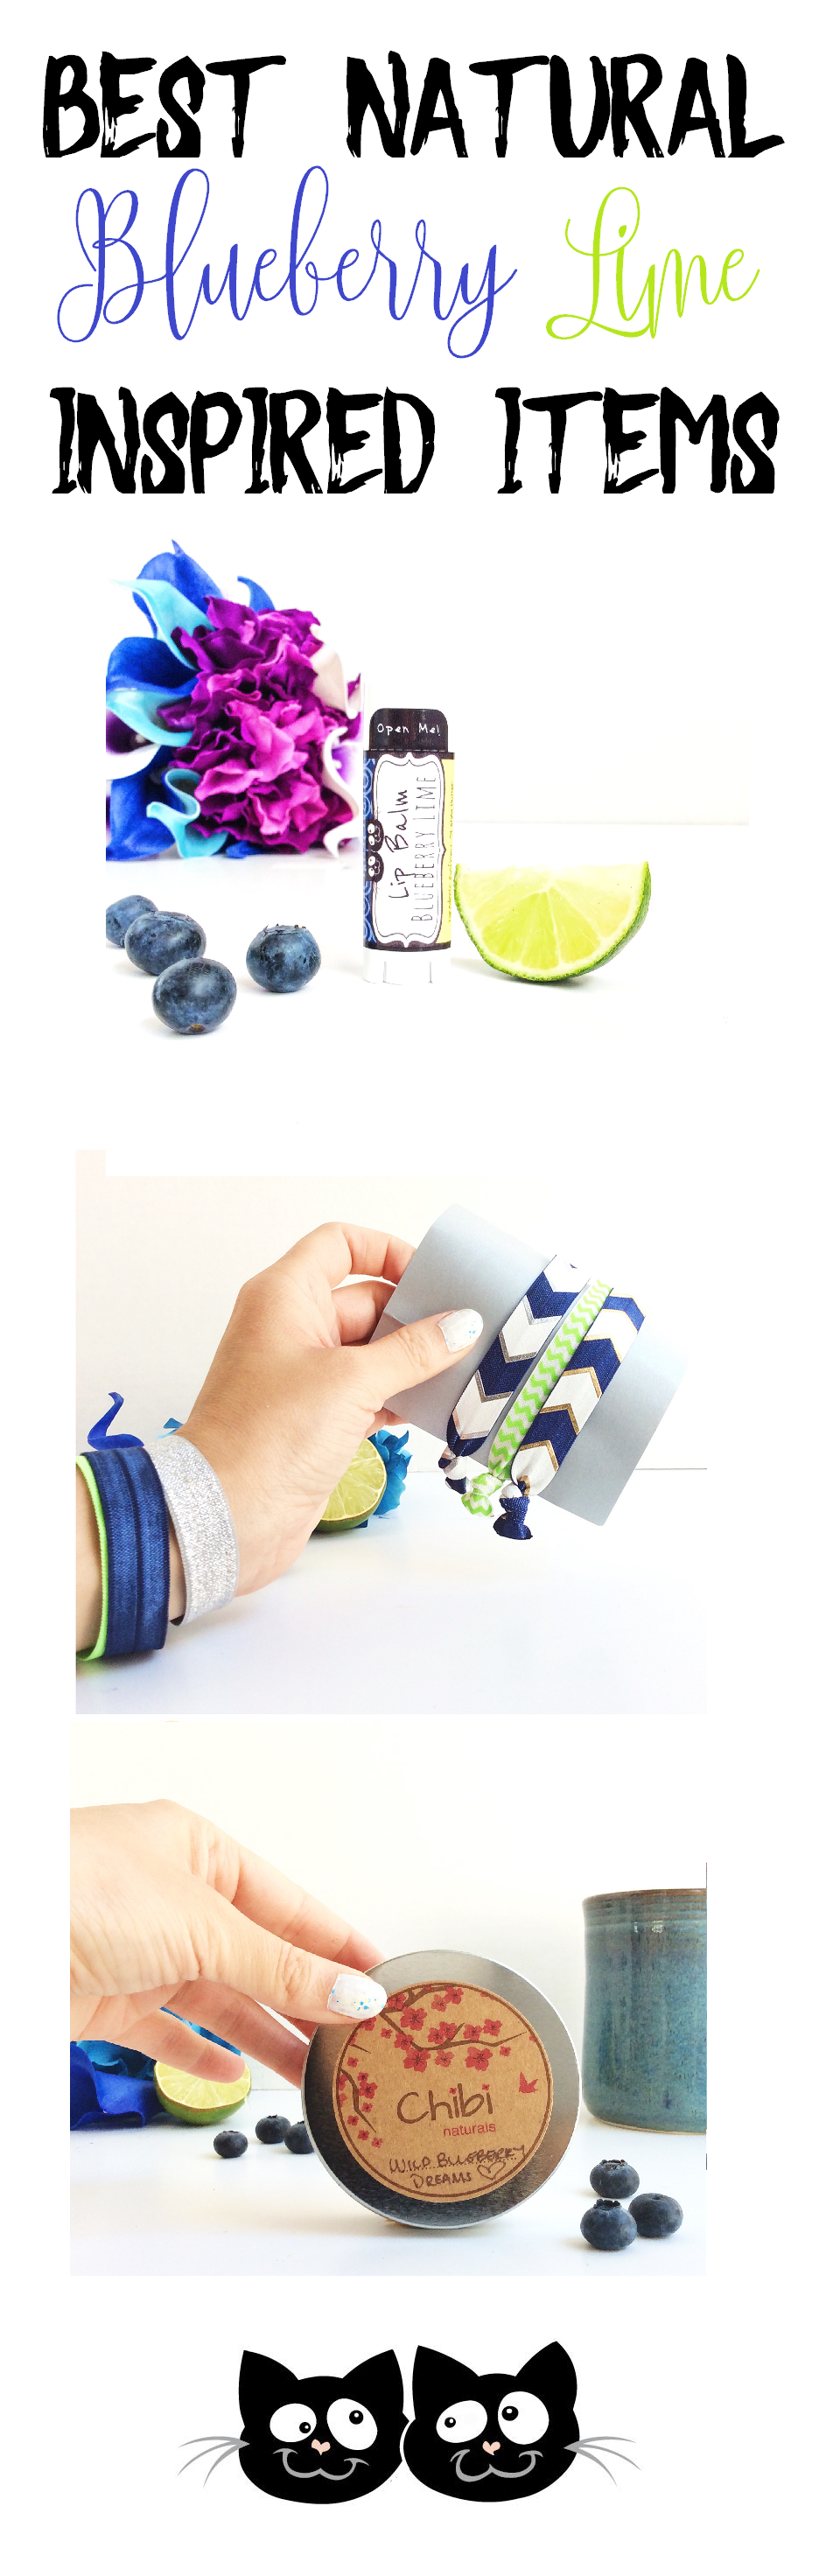 Moody Sisters Blueberry Lime Top Product Picks